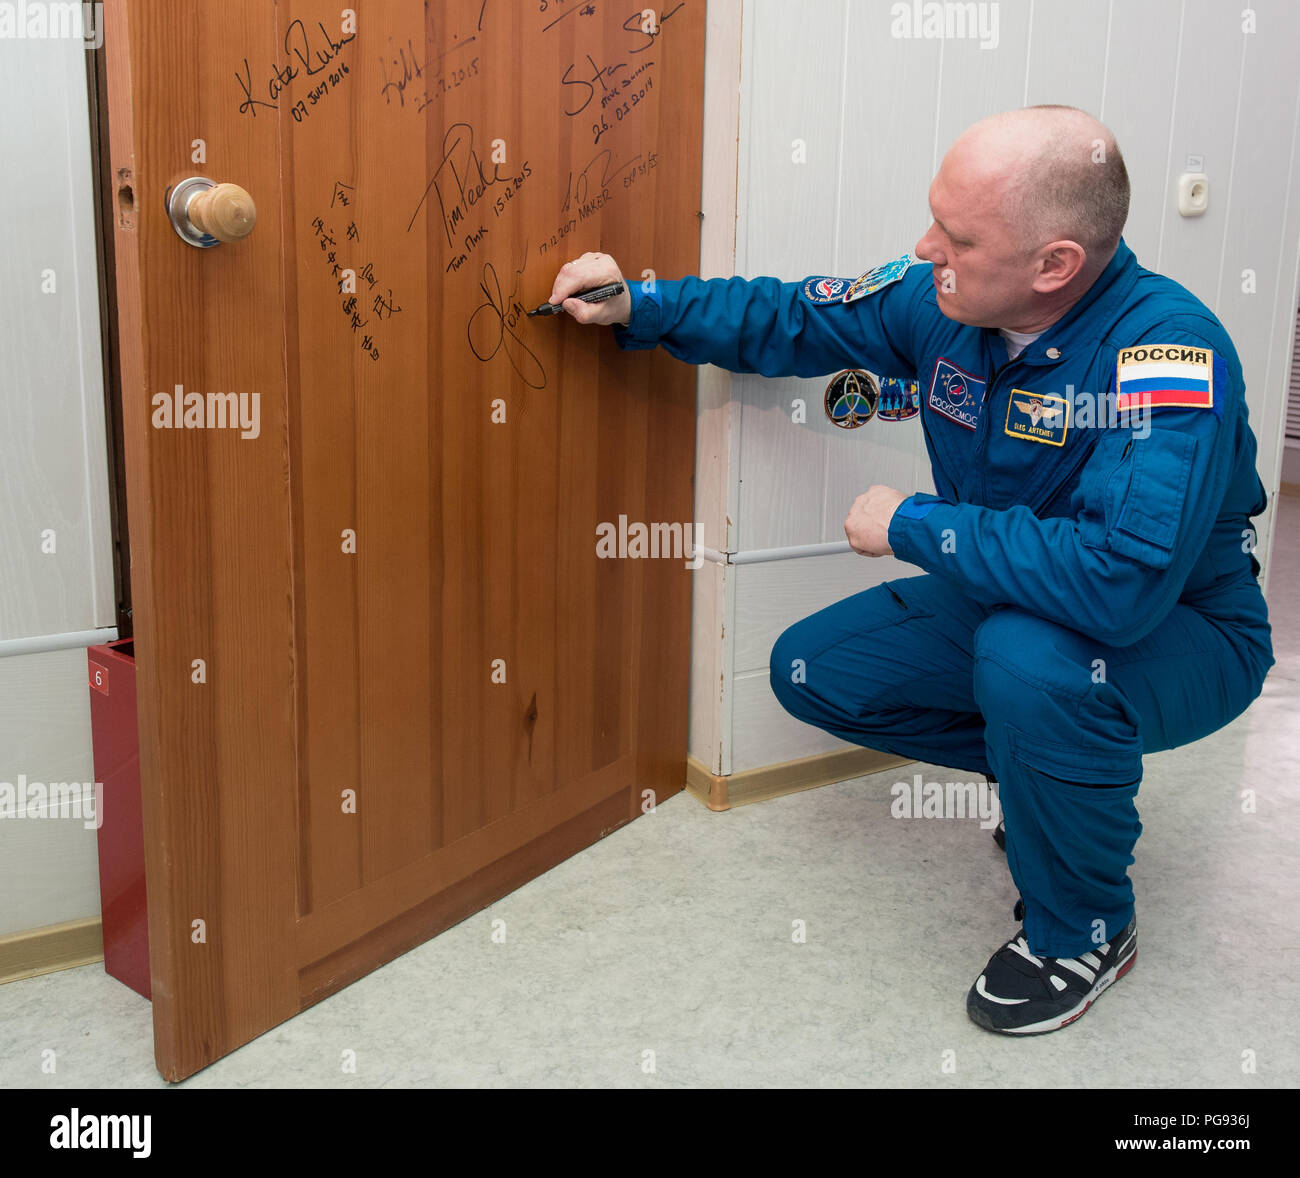 Expedition 55 Soyuz Commander Oleg Artemyev of Roscosmos performs the traditional door signing at the Cosmonaut Hotel prior to departing the hotel for launch on a Soyuz rocket with fellow crewmates Ricky Arnold and Drew Feustel of NASA, Wednesday, March 21, 2018 in Baikonur, Kazakhstan.  Artemyev, Arnold, and Feustel will launch in their Soyuz MS-08 spacecraft to the International Space Station to being a five month mission. - Stock Image